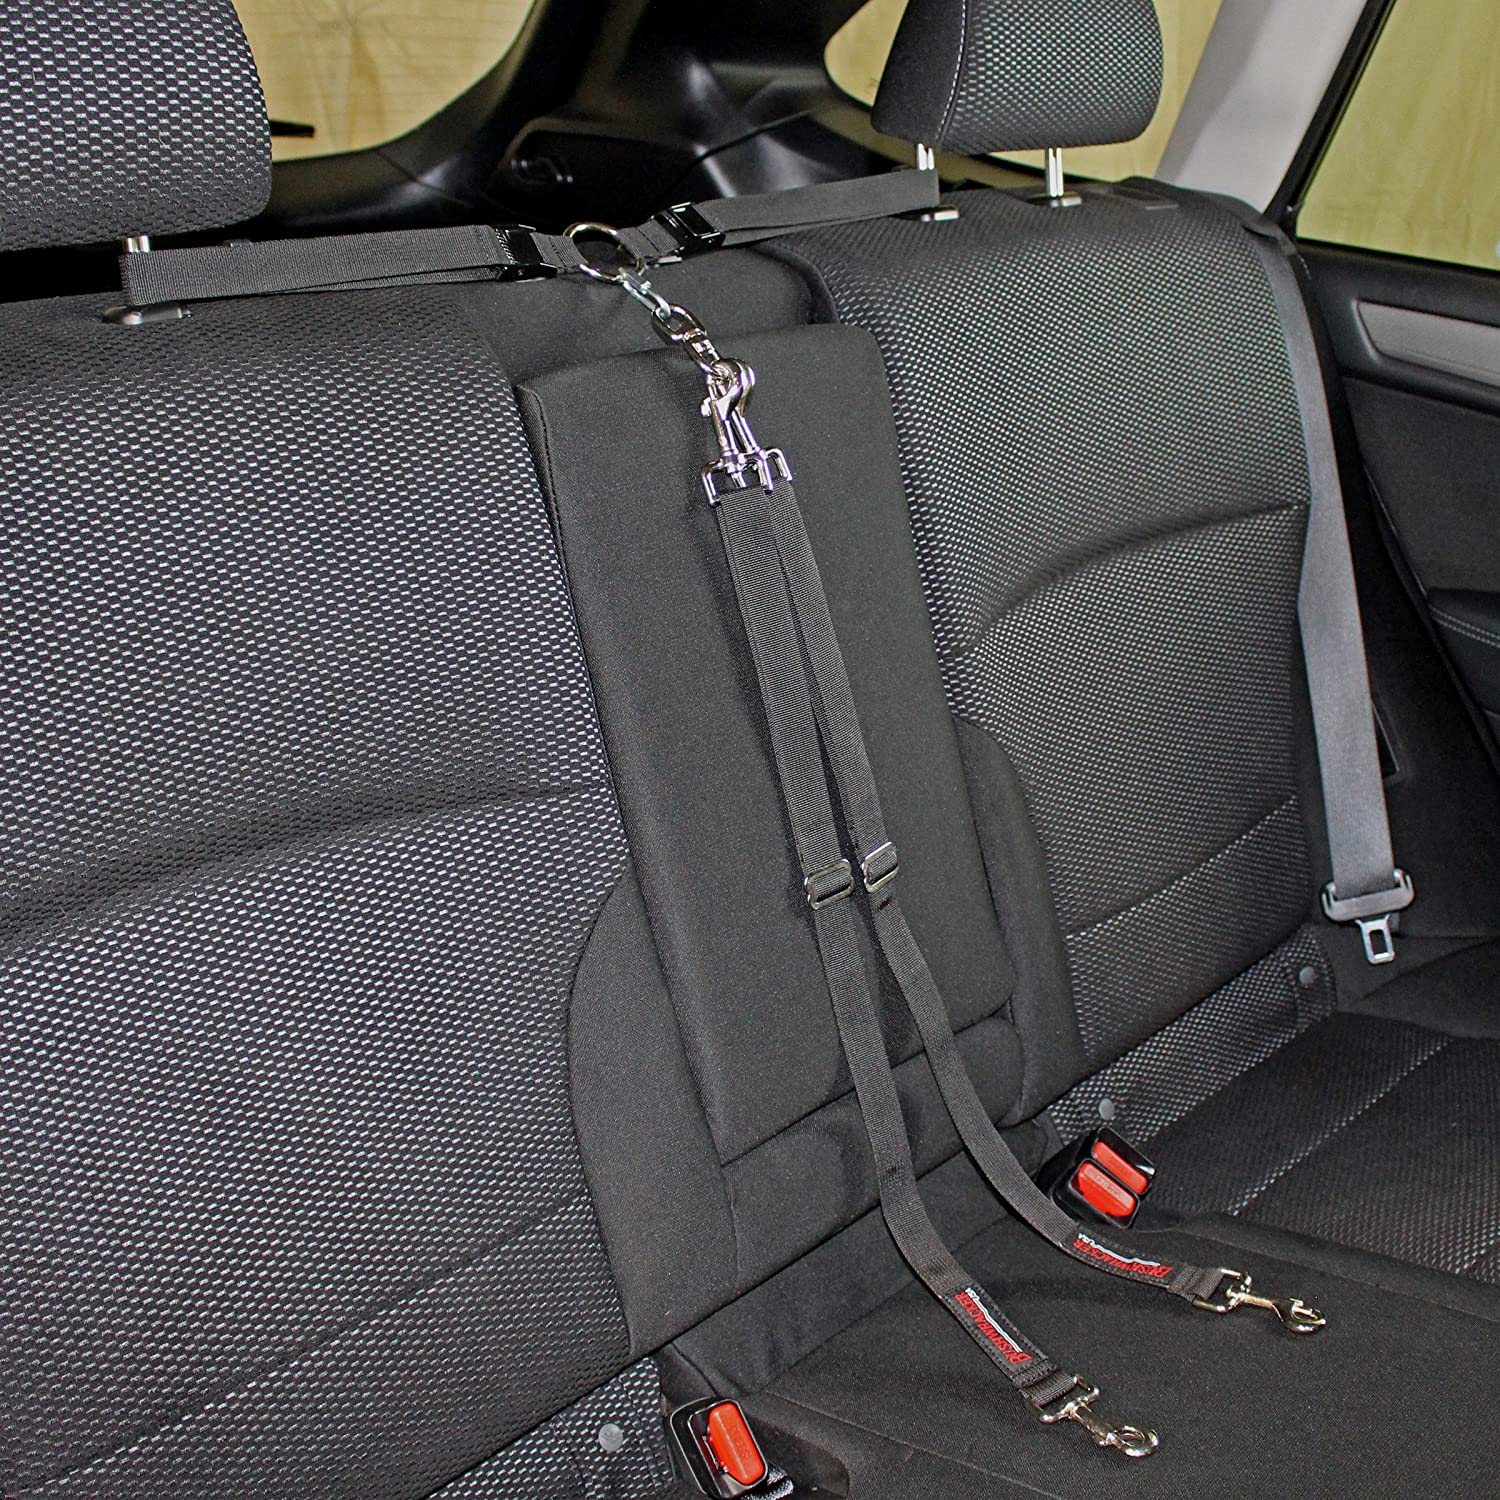 Paws n Claws Two Dog Tangle Free Tether Vehicle Adjustable Restraint K9 Backseat Leash Truck Seat Belt Split Double Lead Car Harness Pet Barrier SUV Carrier Extender Cover Tie Down 2 Bushwhacker